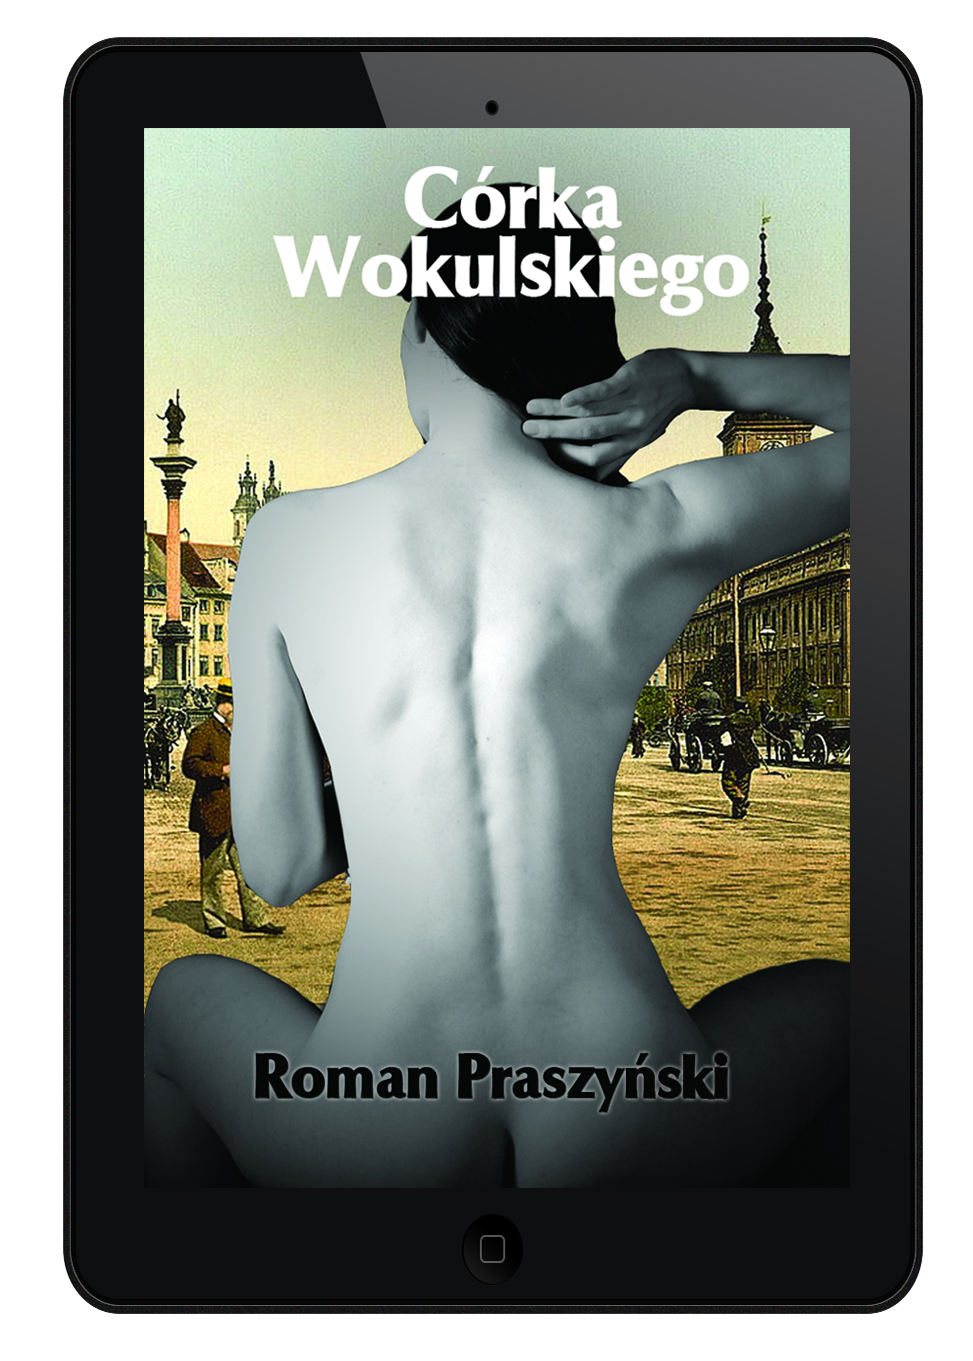 https://www.e-bookowo.pl/self-publishing/corka-wokulskiego.html